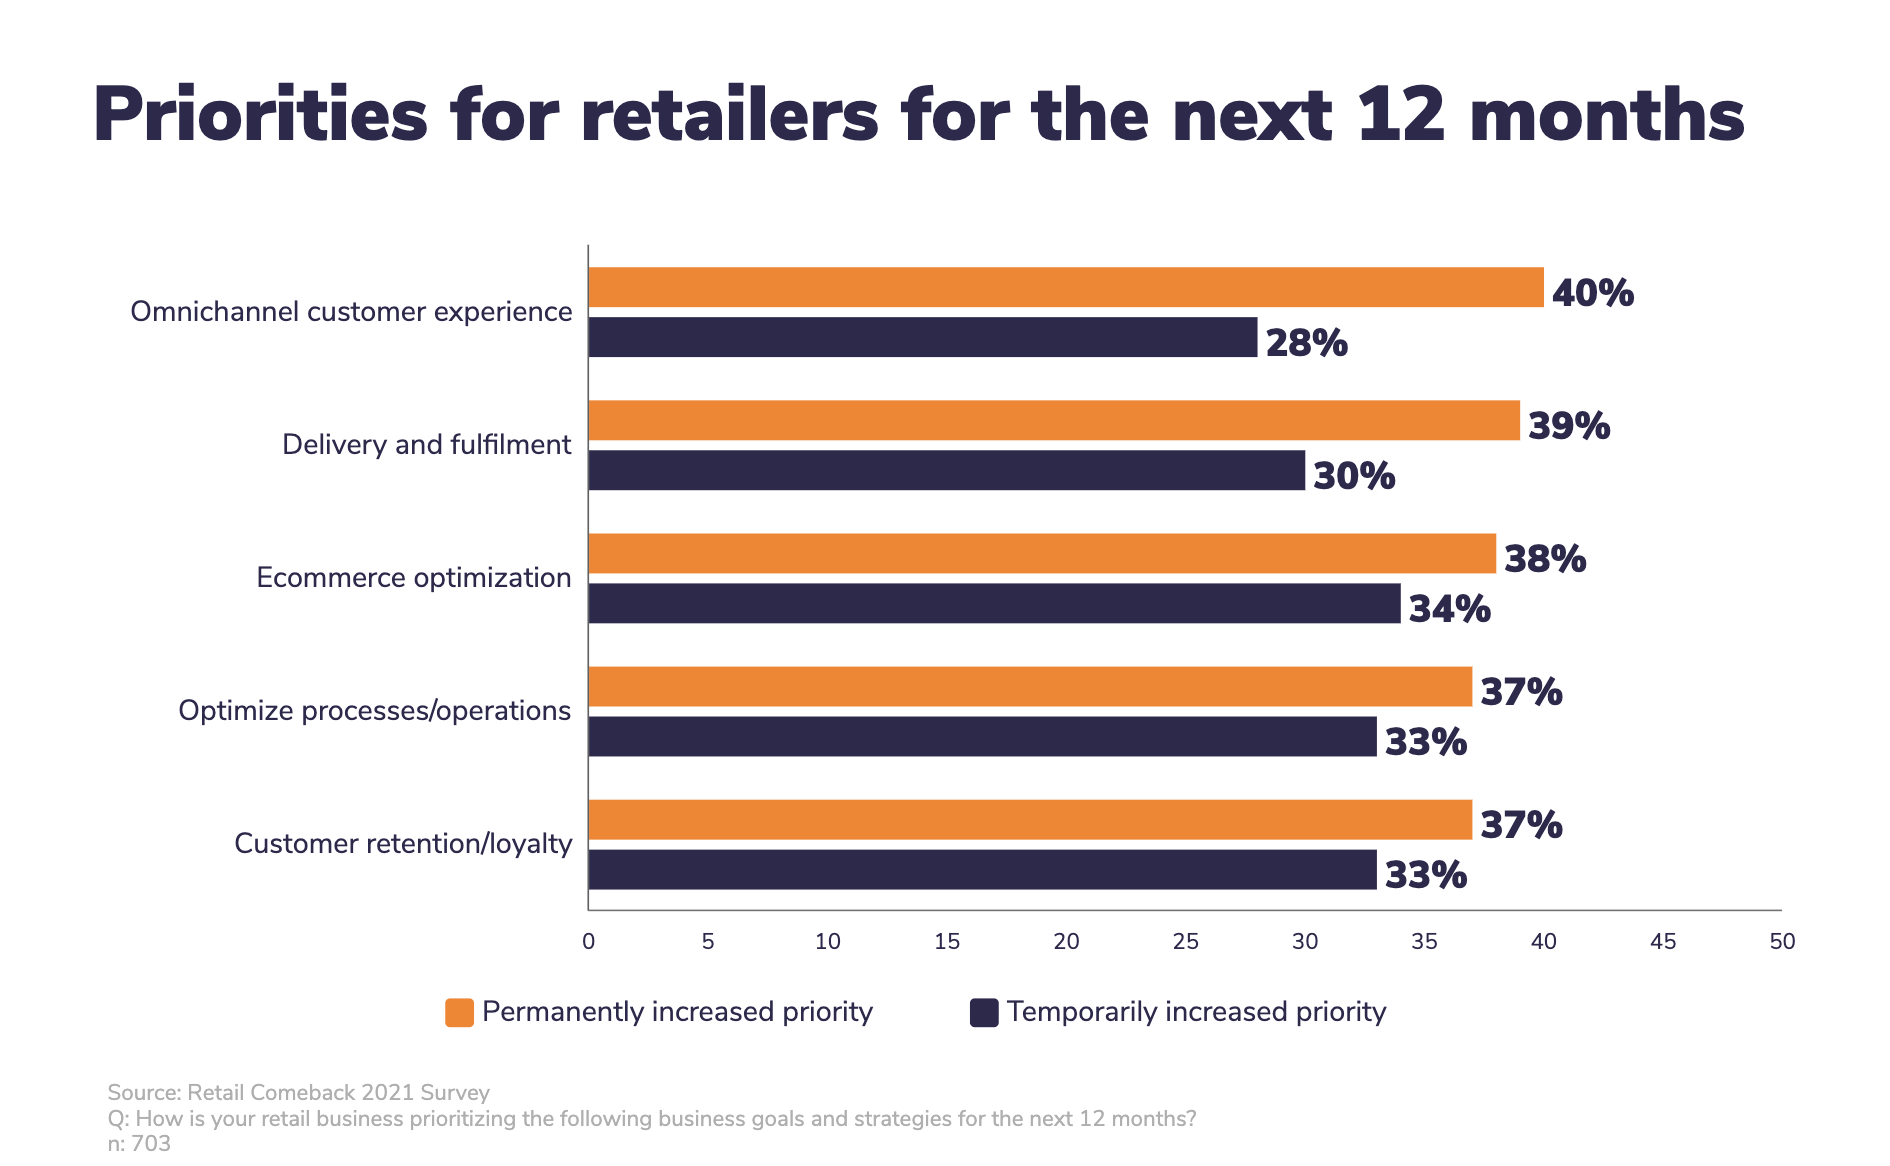 Priorities for retailers for the next 12 months